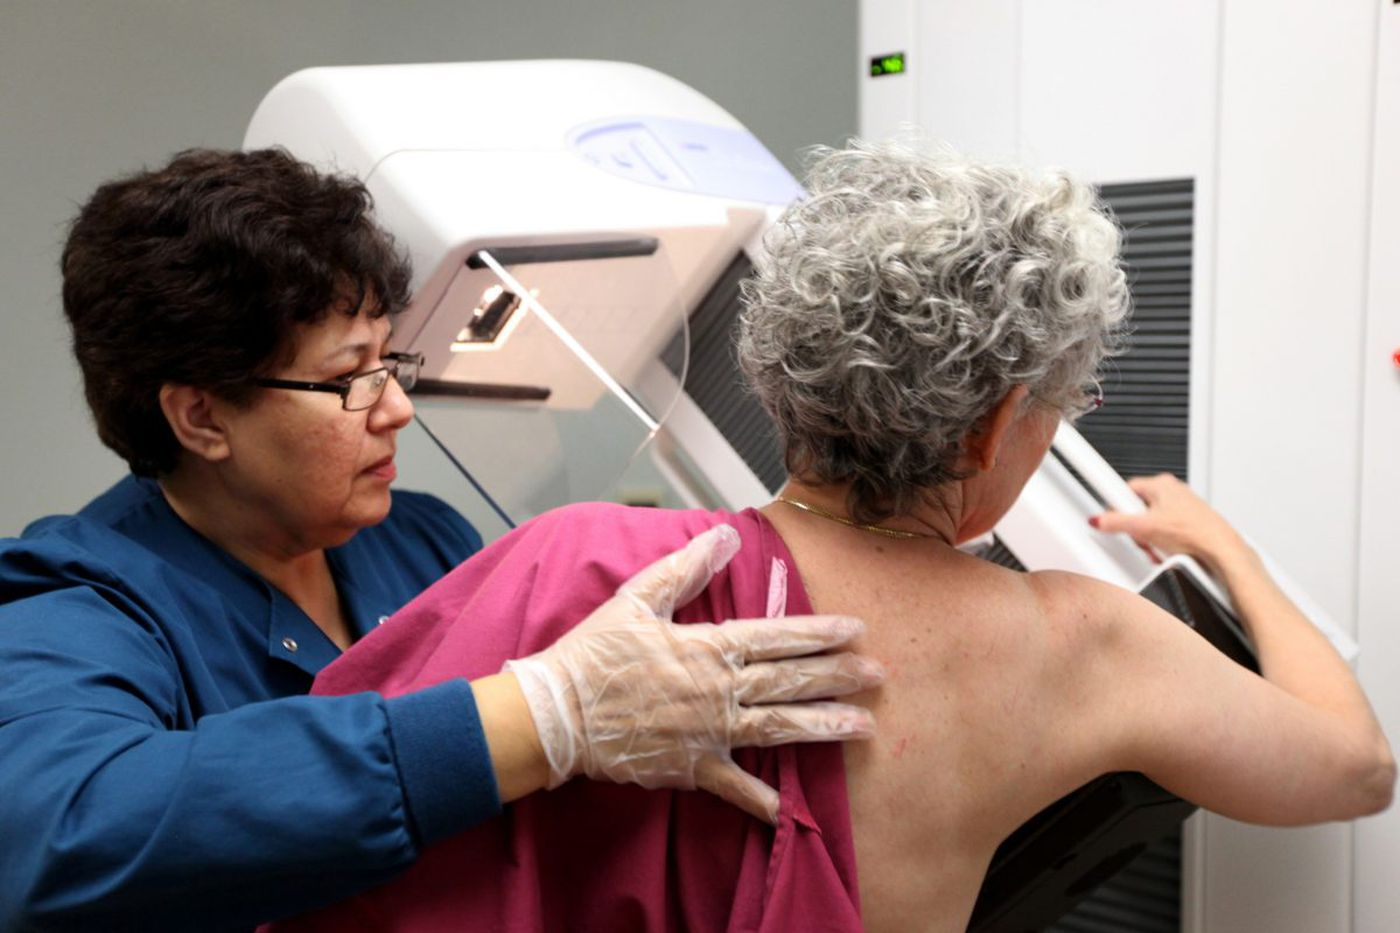 Latest study in mammography debate: Annual screenings starting at 40 are best strategy